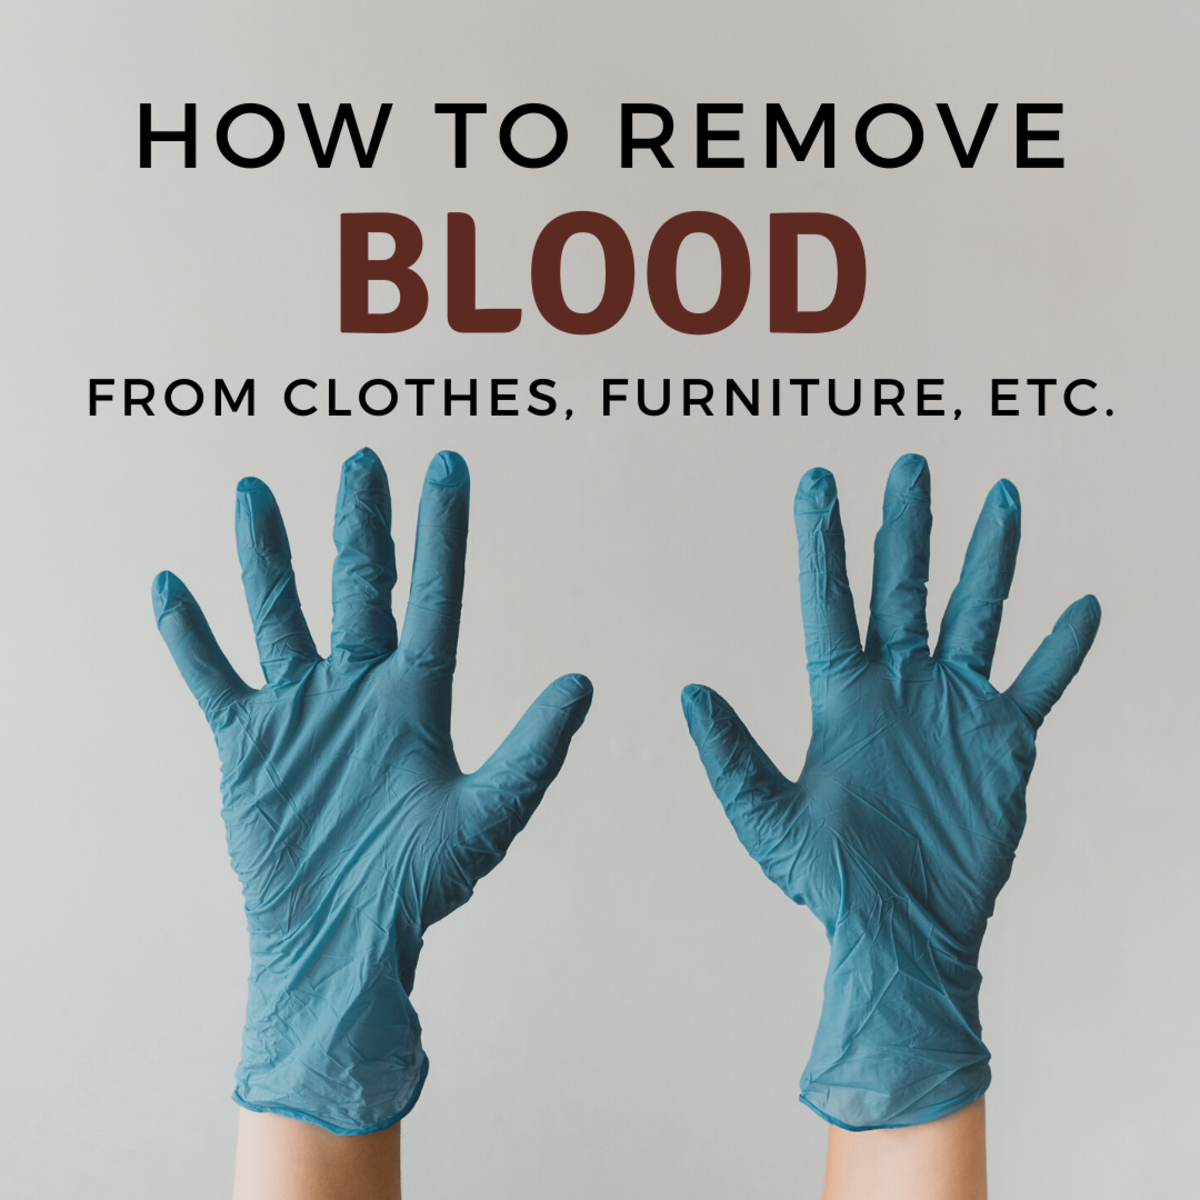 How to Remove Blood Stains From Fabric and Clothes